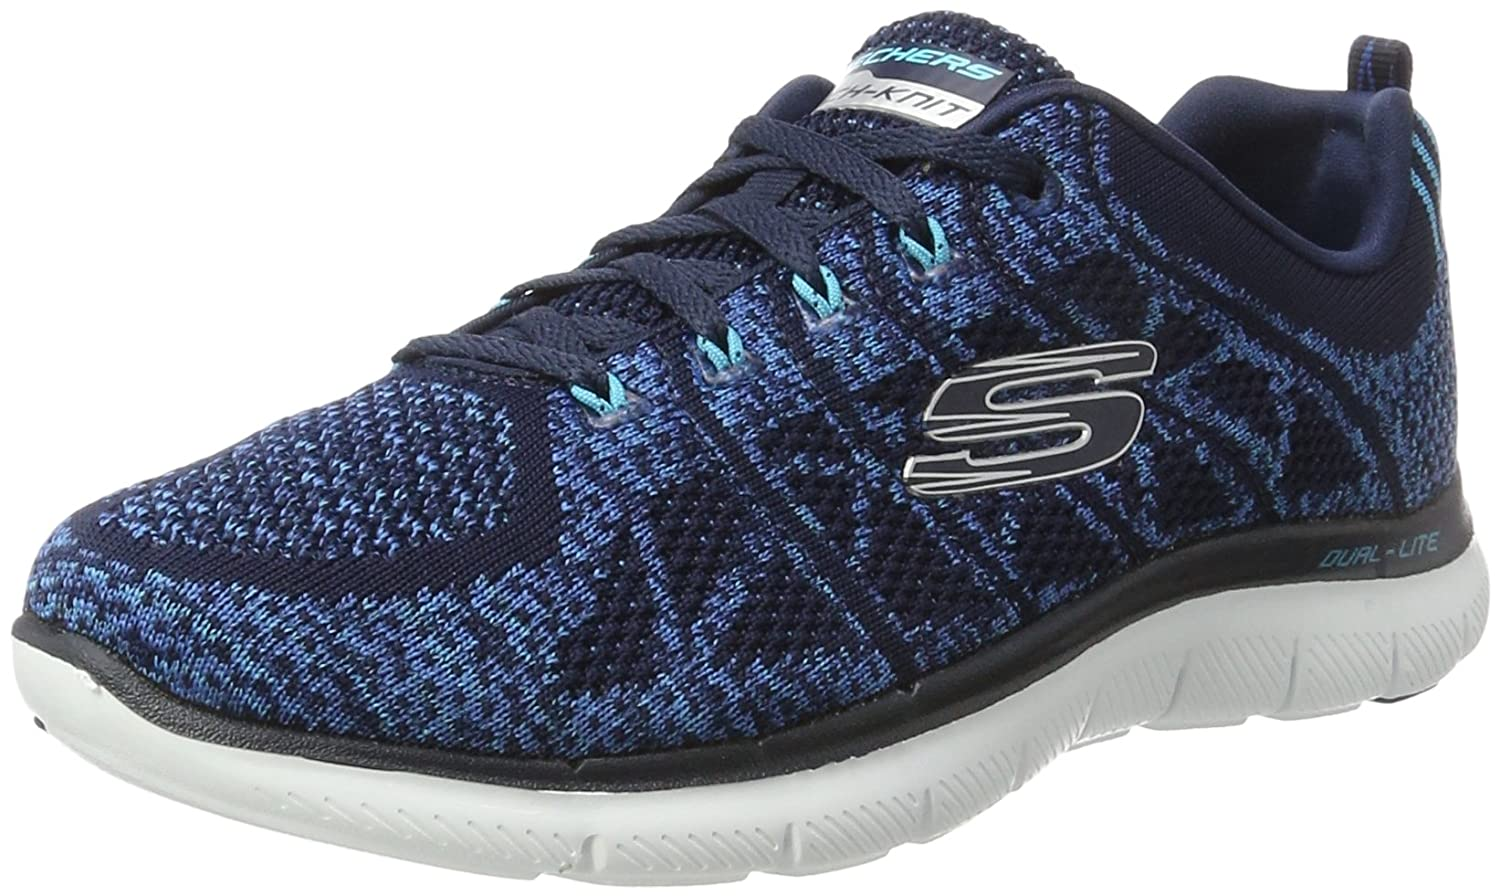 Skechers Flex Appeal 2.0-New Gem, Formateurs Femme 12623